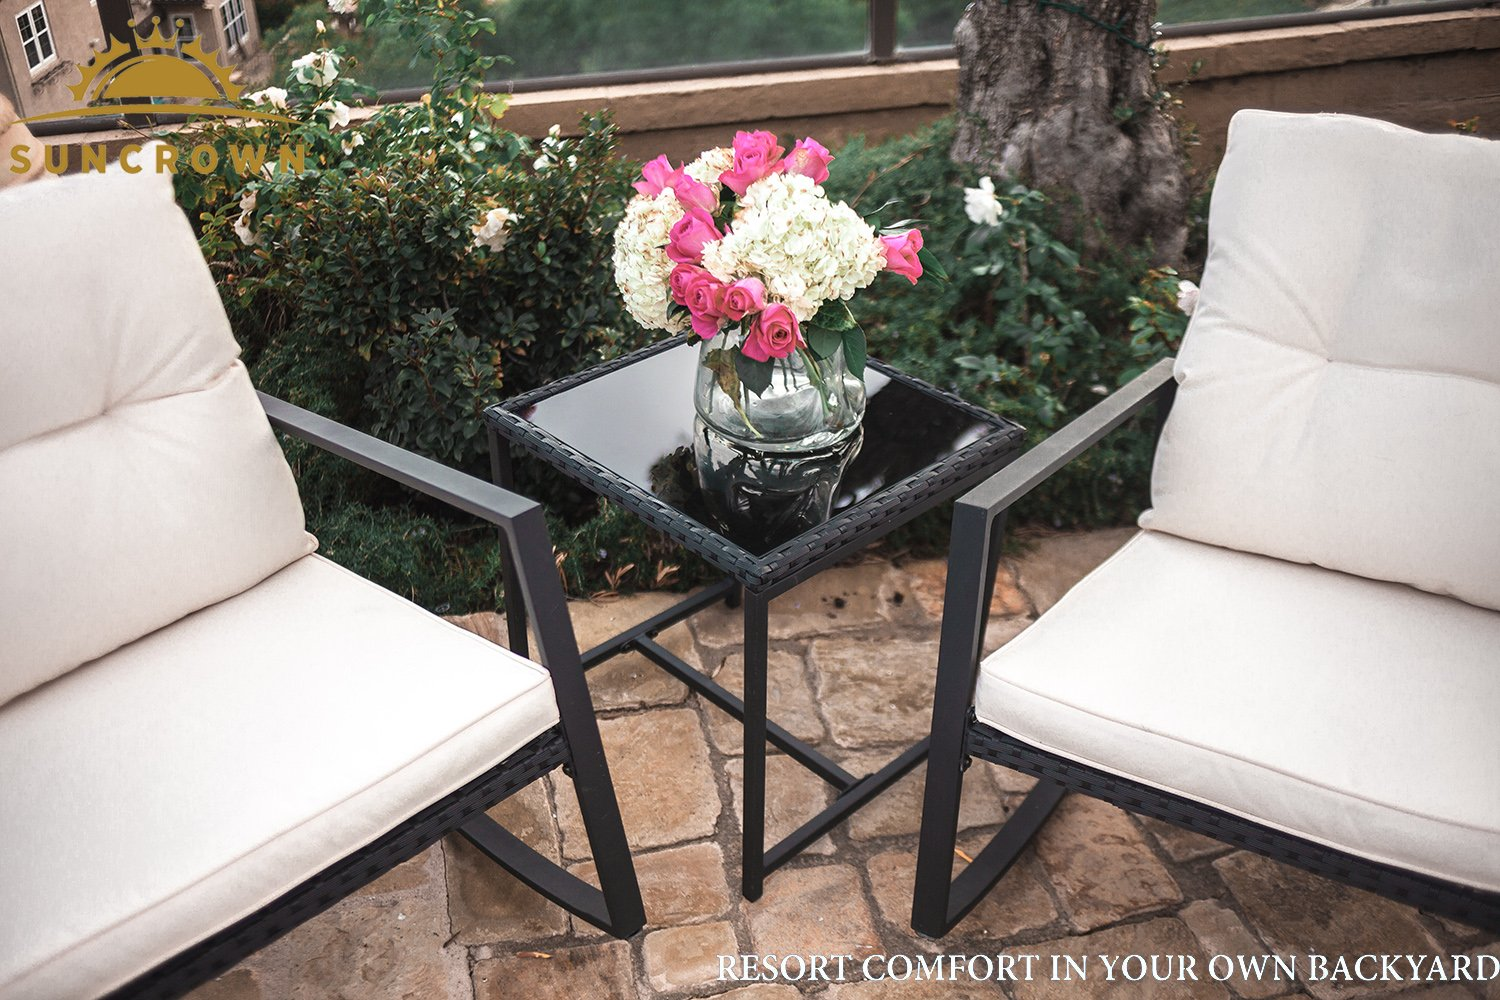 Suncrown Outdoor 3-Piece Rocking Wicker Bistro Set: Black Wicker Furniture - Two Chairs with Glass Coffee Table (White Cushion) by Suncrown (Image #2)